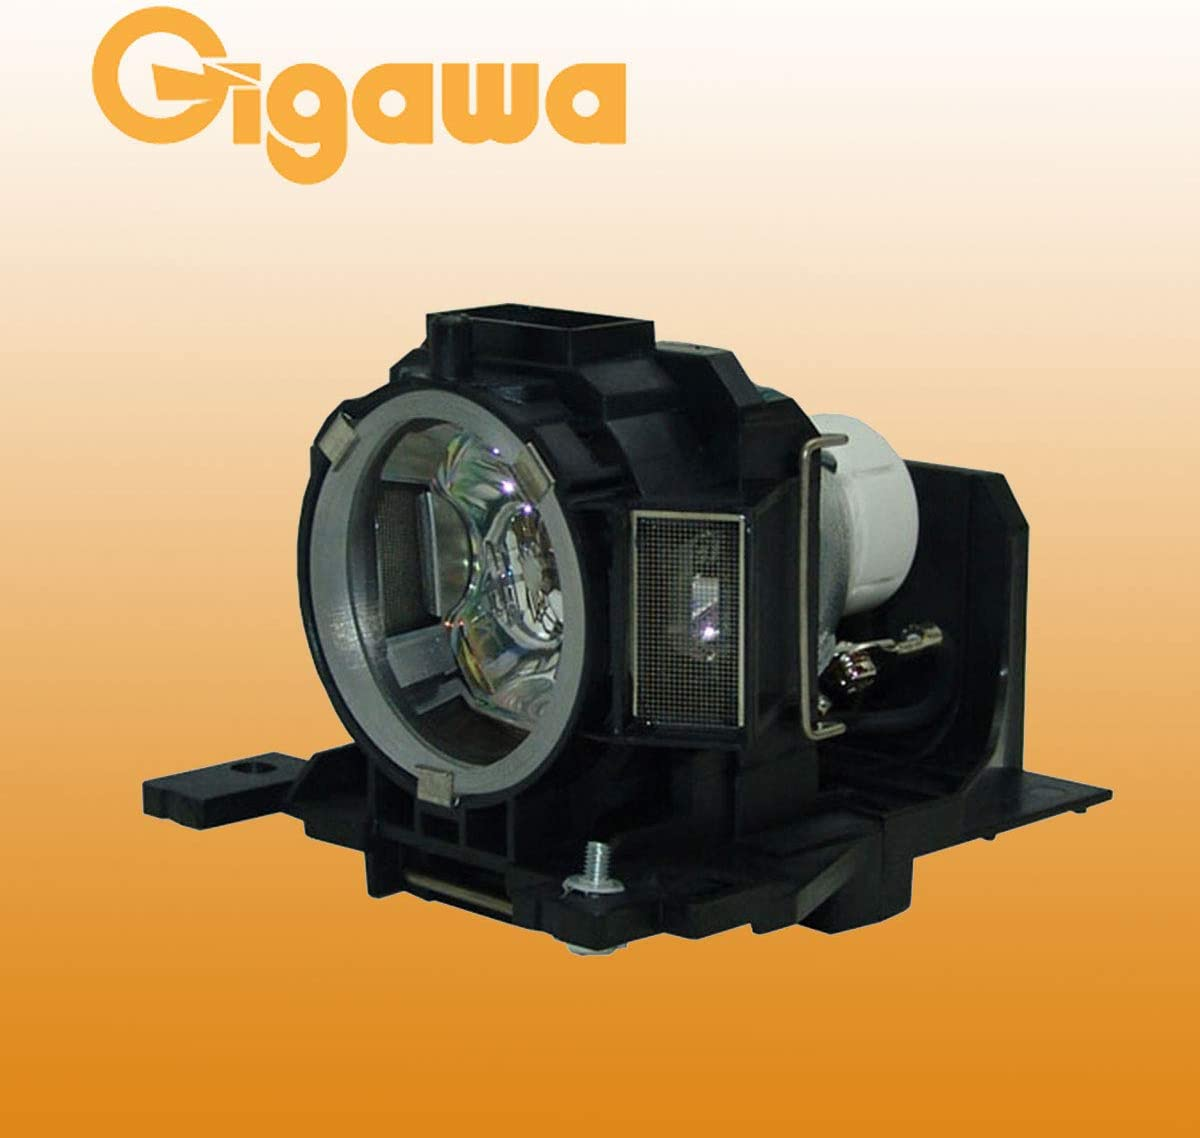 Gigawa lamp and housing Replacement for Hitachi projectors DT01181 for BZ-1 CP-A220N CP-A221N CP-A221NM CP-A222NM CP-A222WN CP-A250NL CP-A300N CP-A301N CP-A301NM CP-A302NM CP-A302WN CP-AW250NM